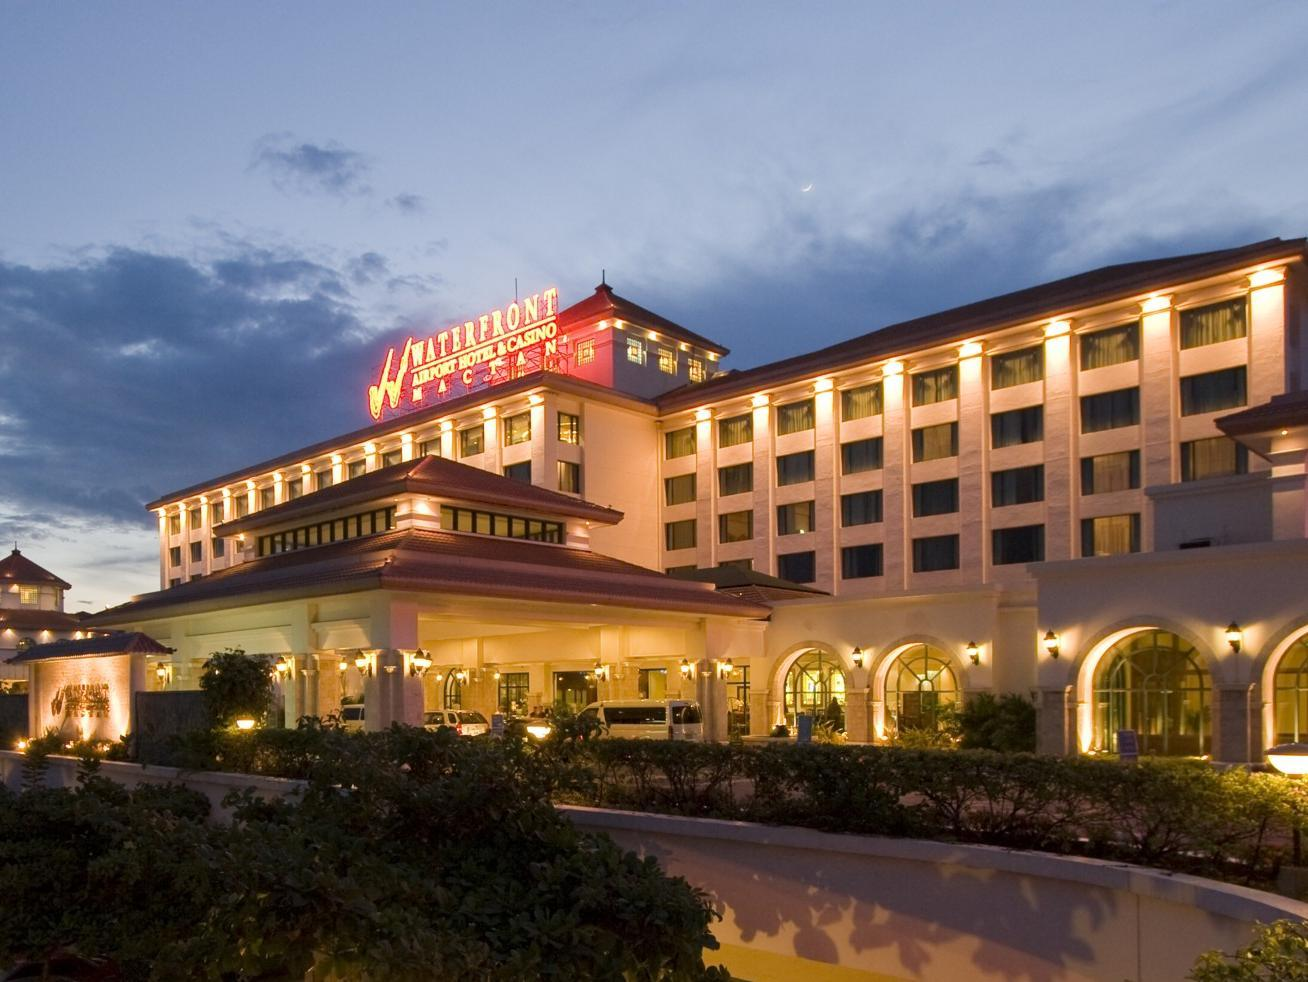 Waterfront Airport Hotel and Casino Cebu - Hotel z zewnątrz